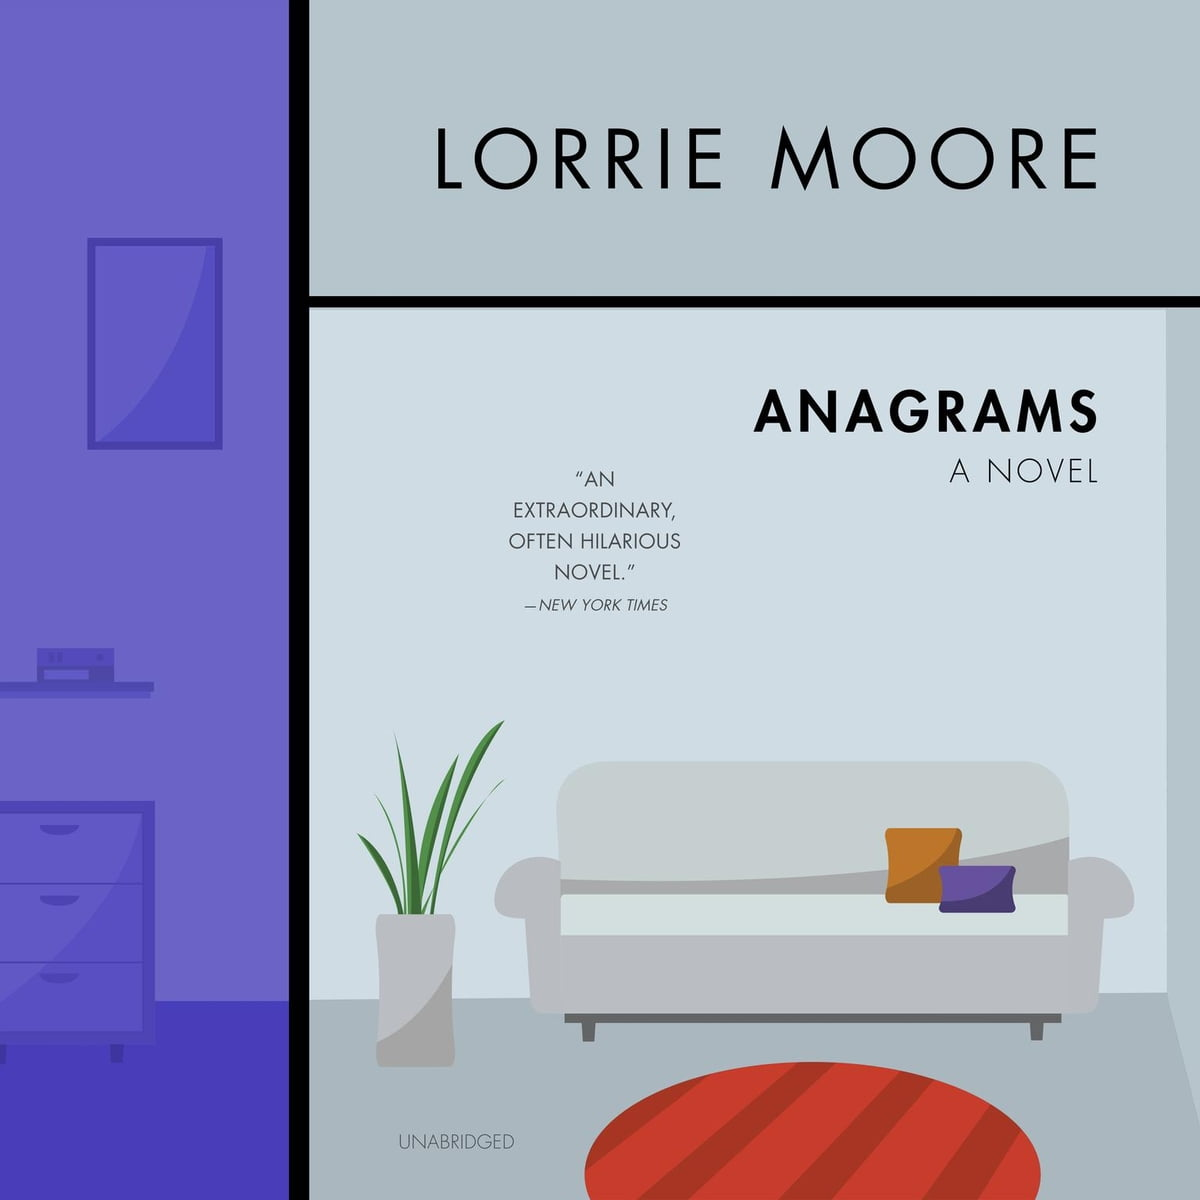 Anagrams Audiobook by Lorrie Moore - 9781982631970 | Rakuten Kobo